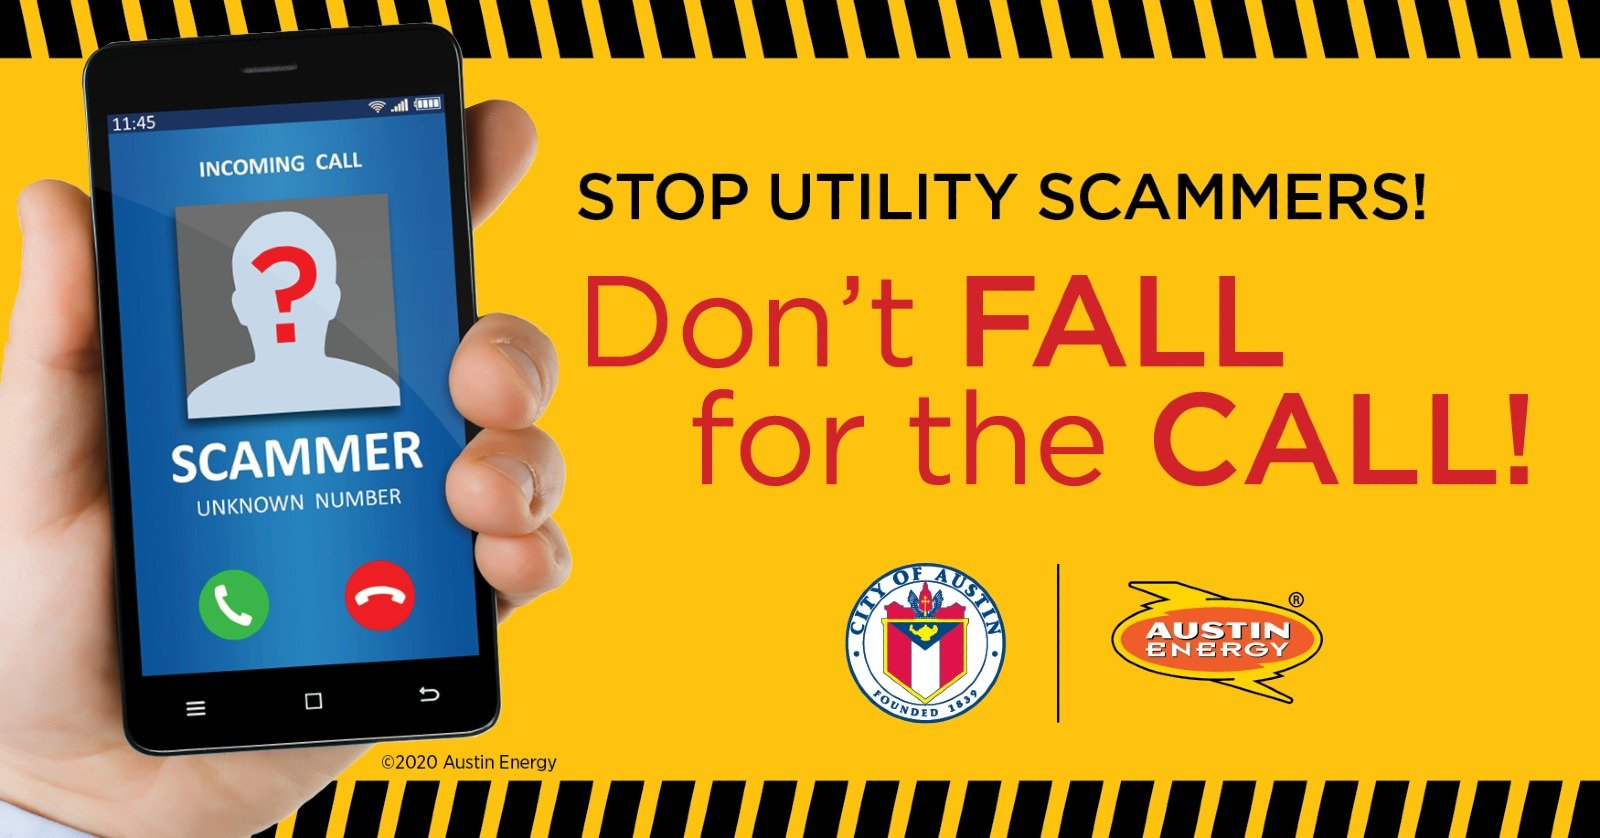 Texas electric company warns of scammers threatening to cut power